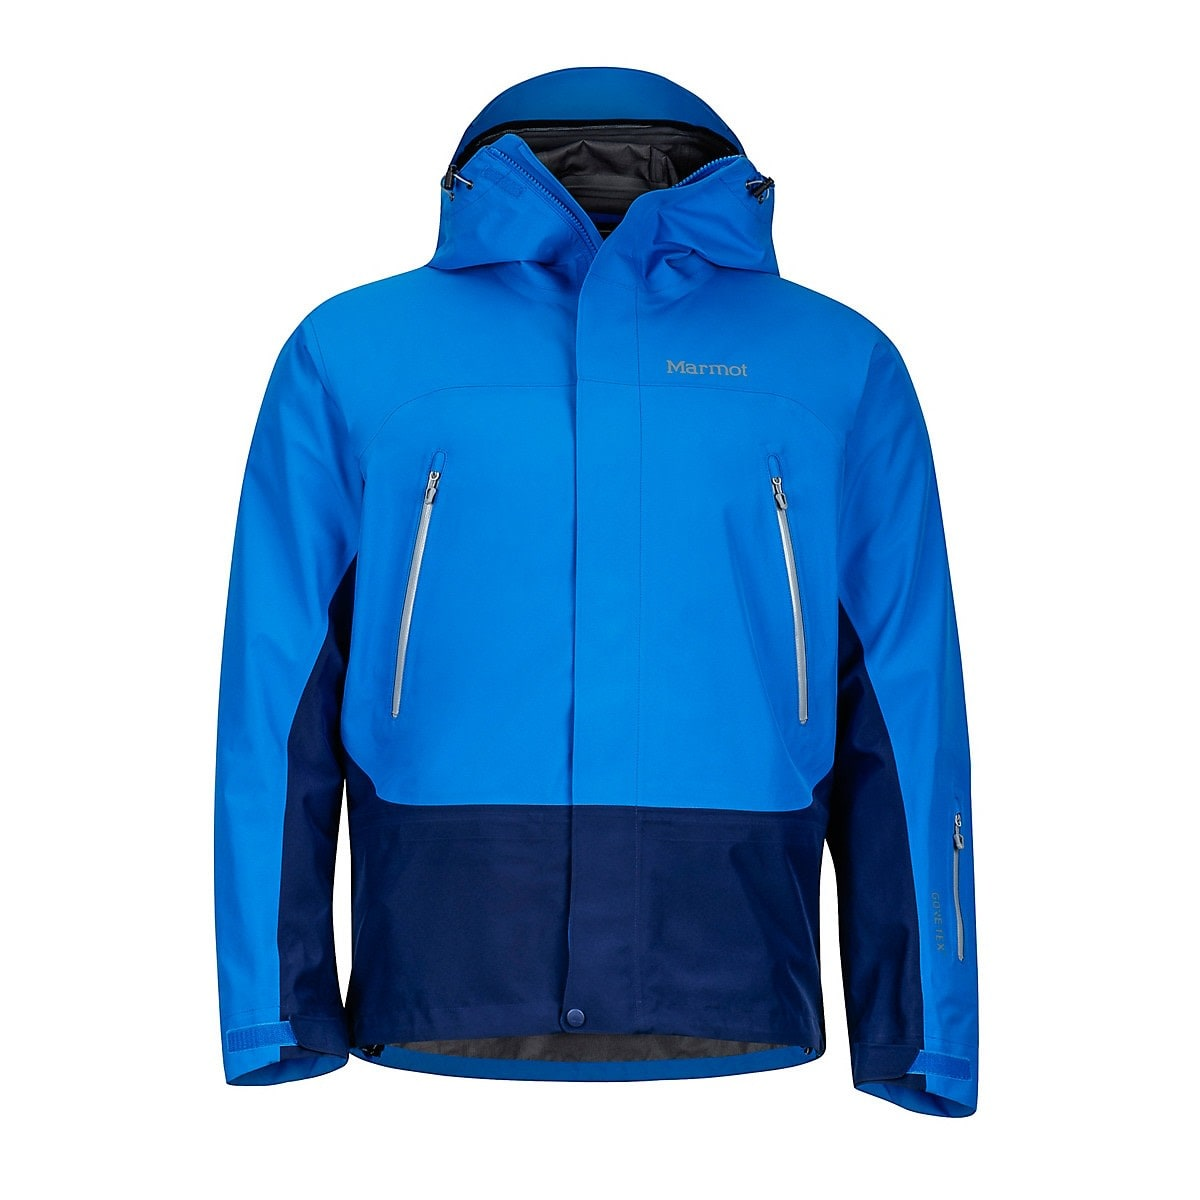 e87254fc Outnorth Outnorth fra Jacket Spire Marmot Kjøp twqFIfxE